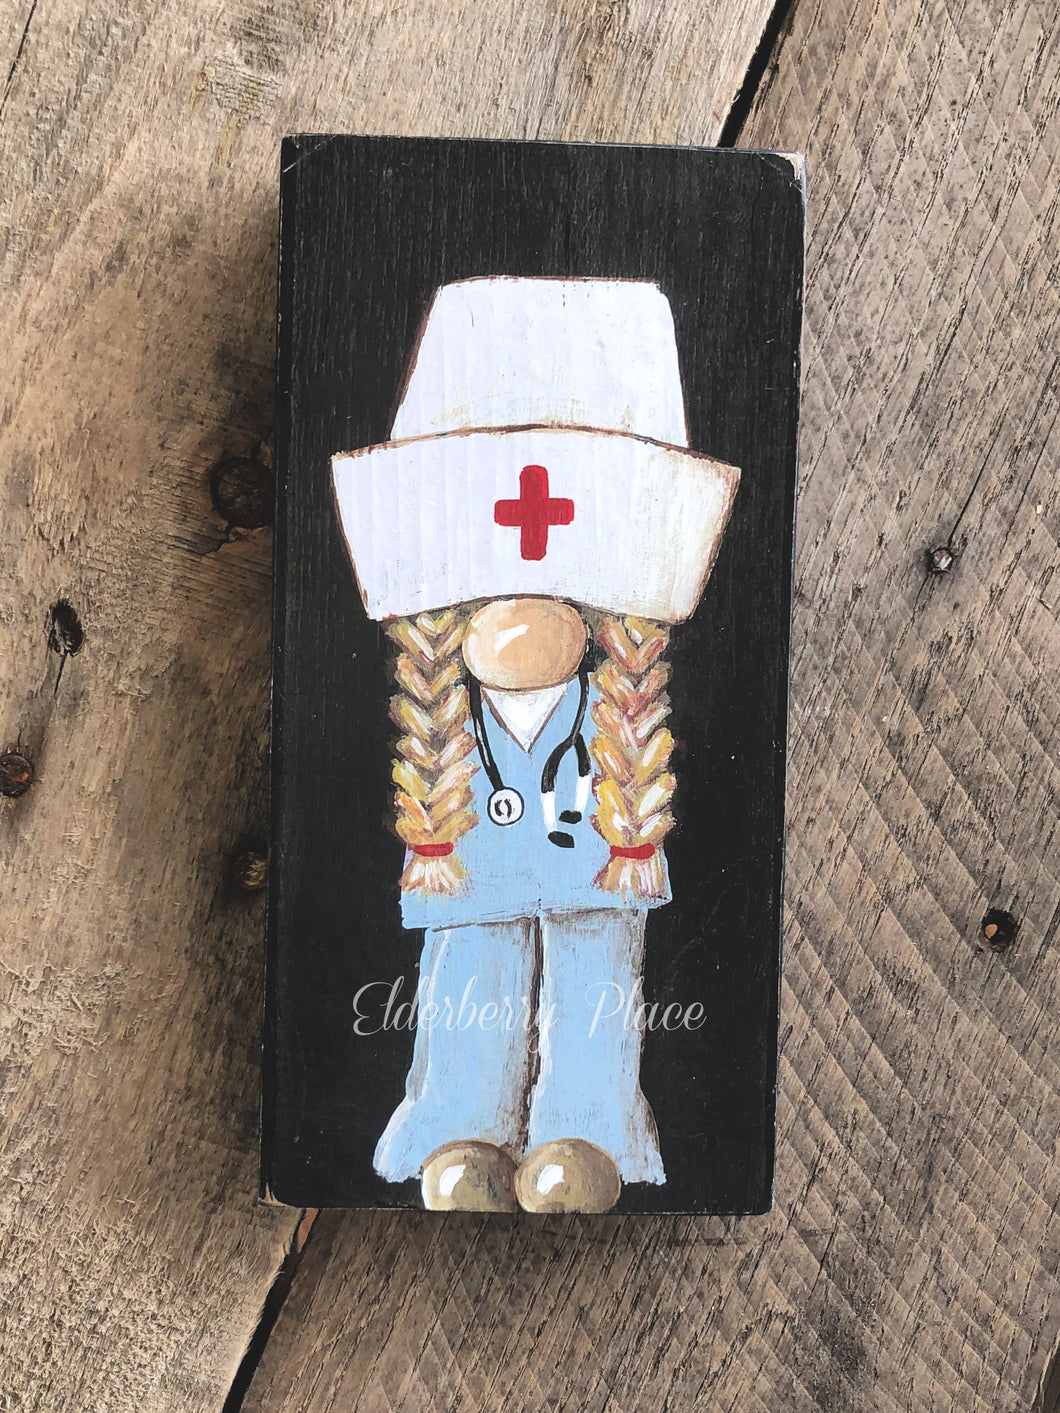 PRINT BLOCK of Original Gnome - Nurse Blonde Hair 7